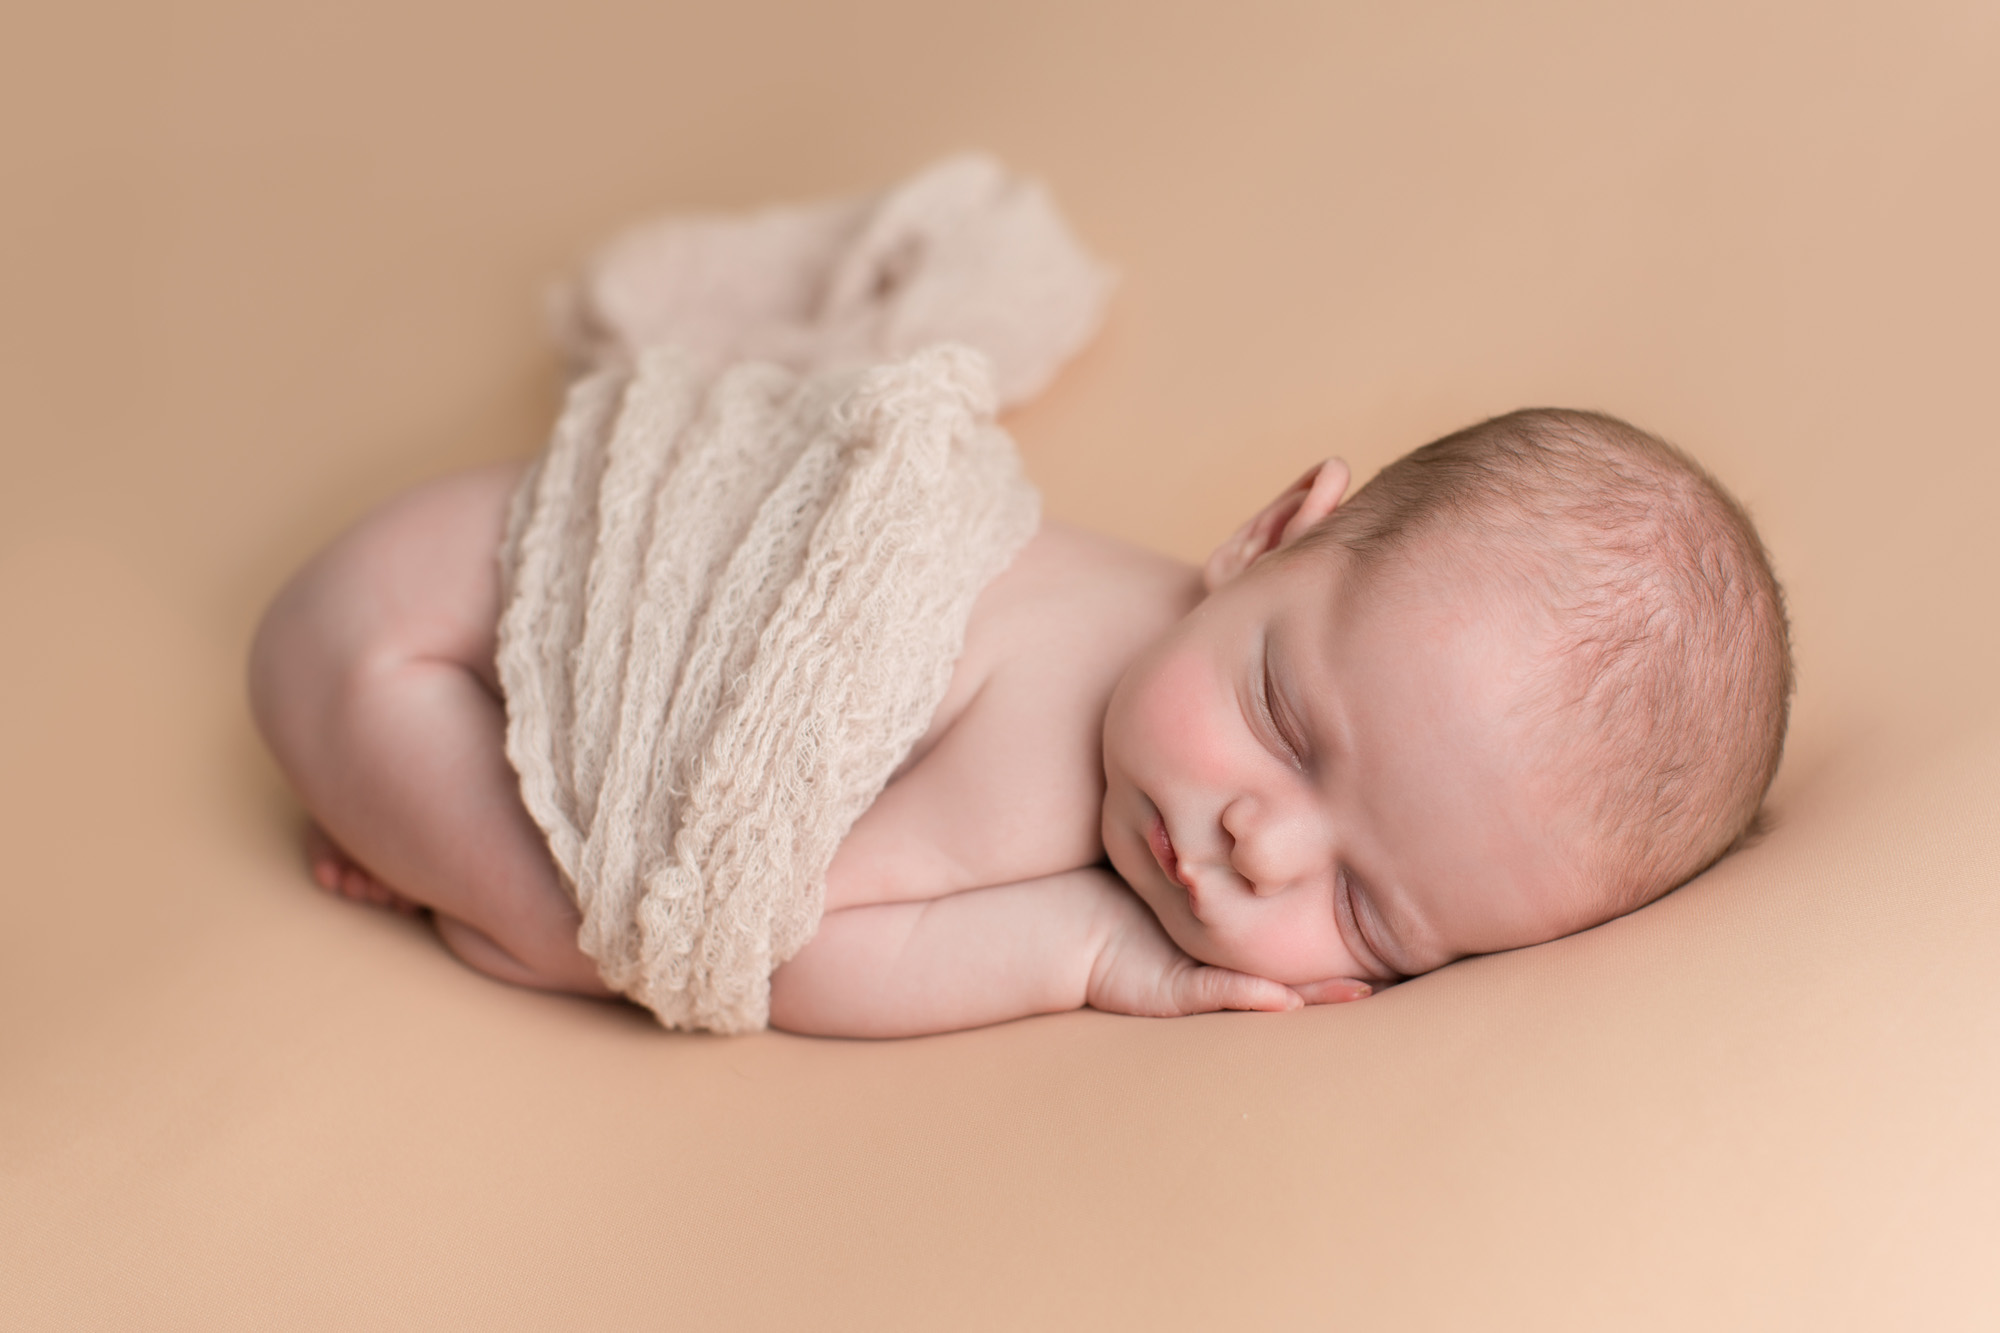 Newborn girl laying on pink taken by DMV newborn photographer Sarah Botta Photography in Woodbridge, VA studio